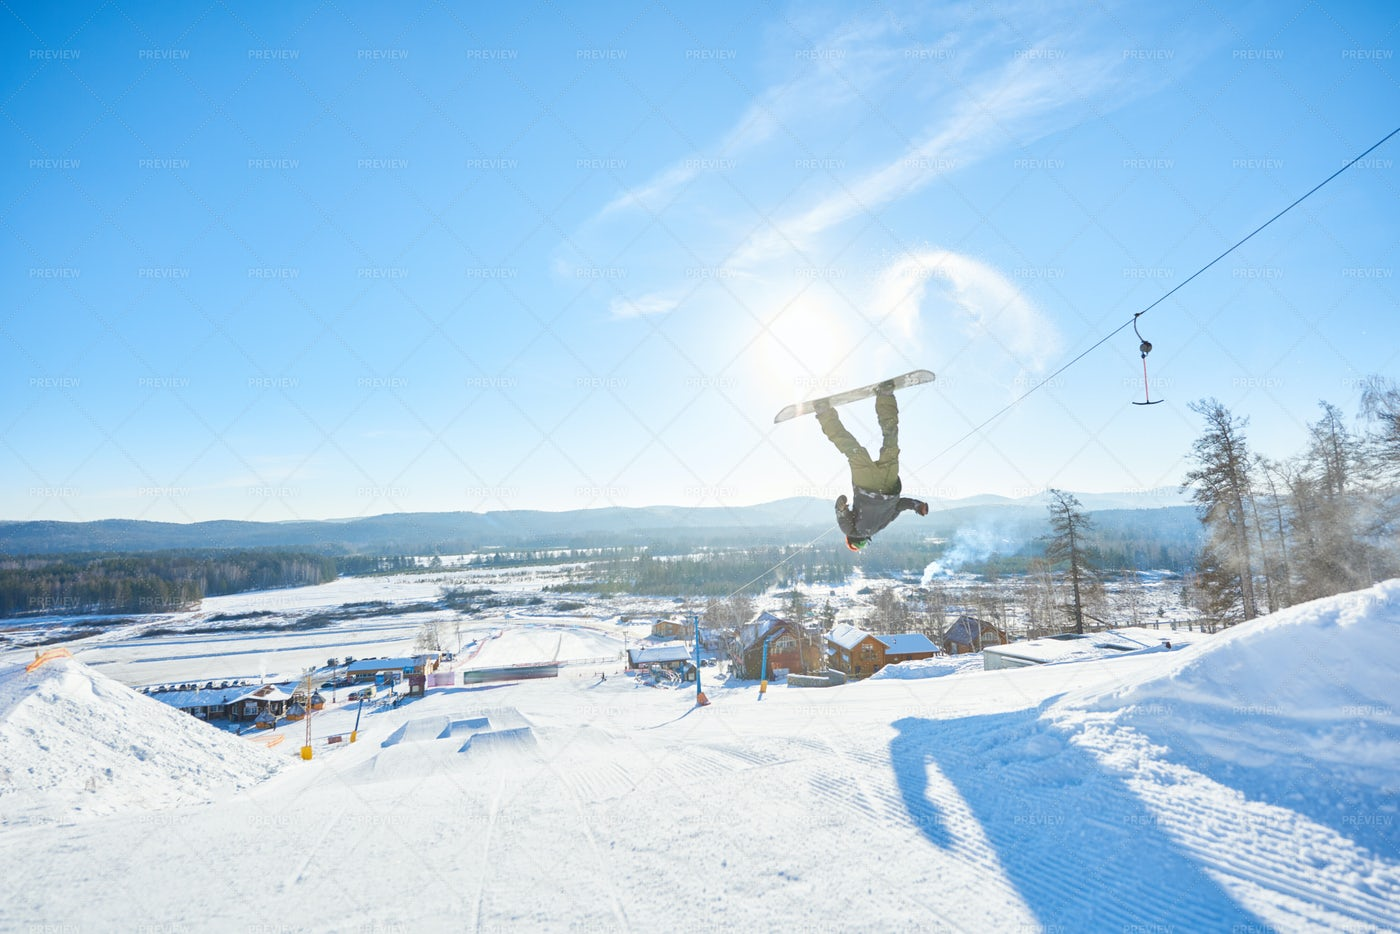 Snowboarder Spinning In Air: Stock Photos